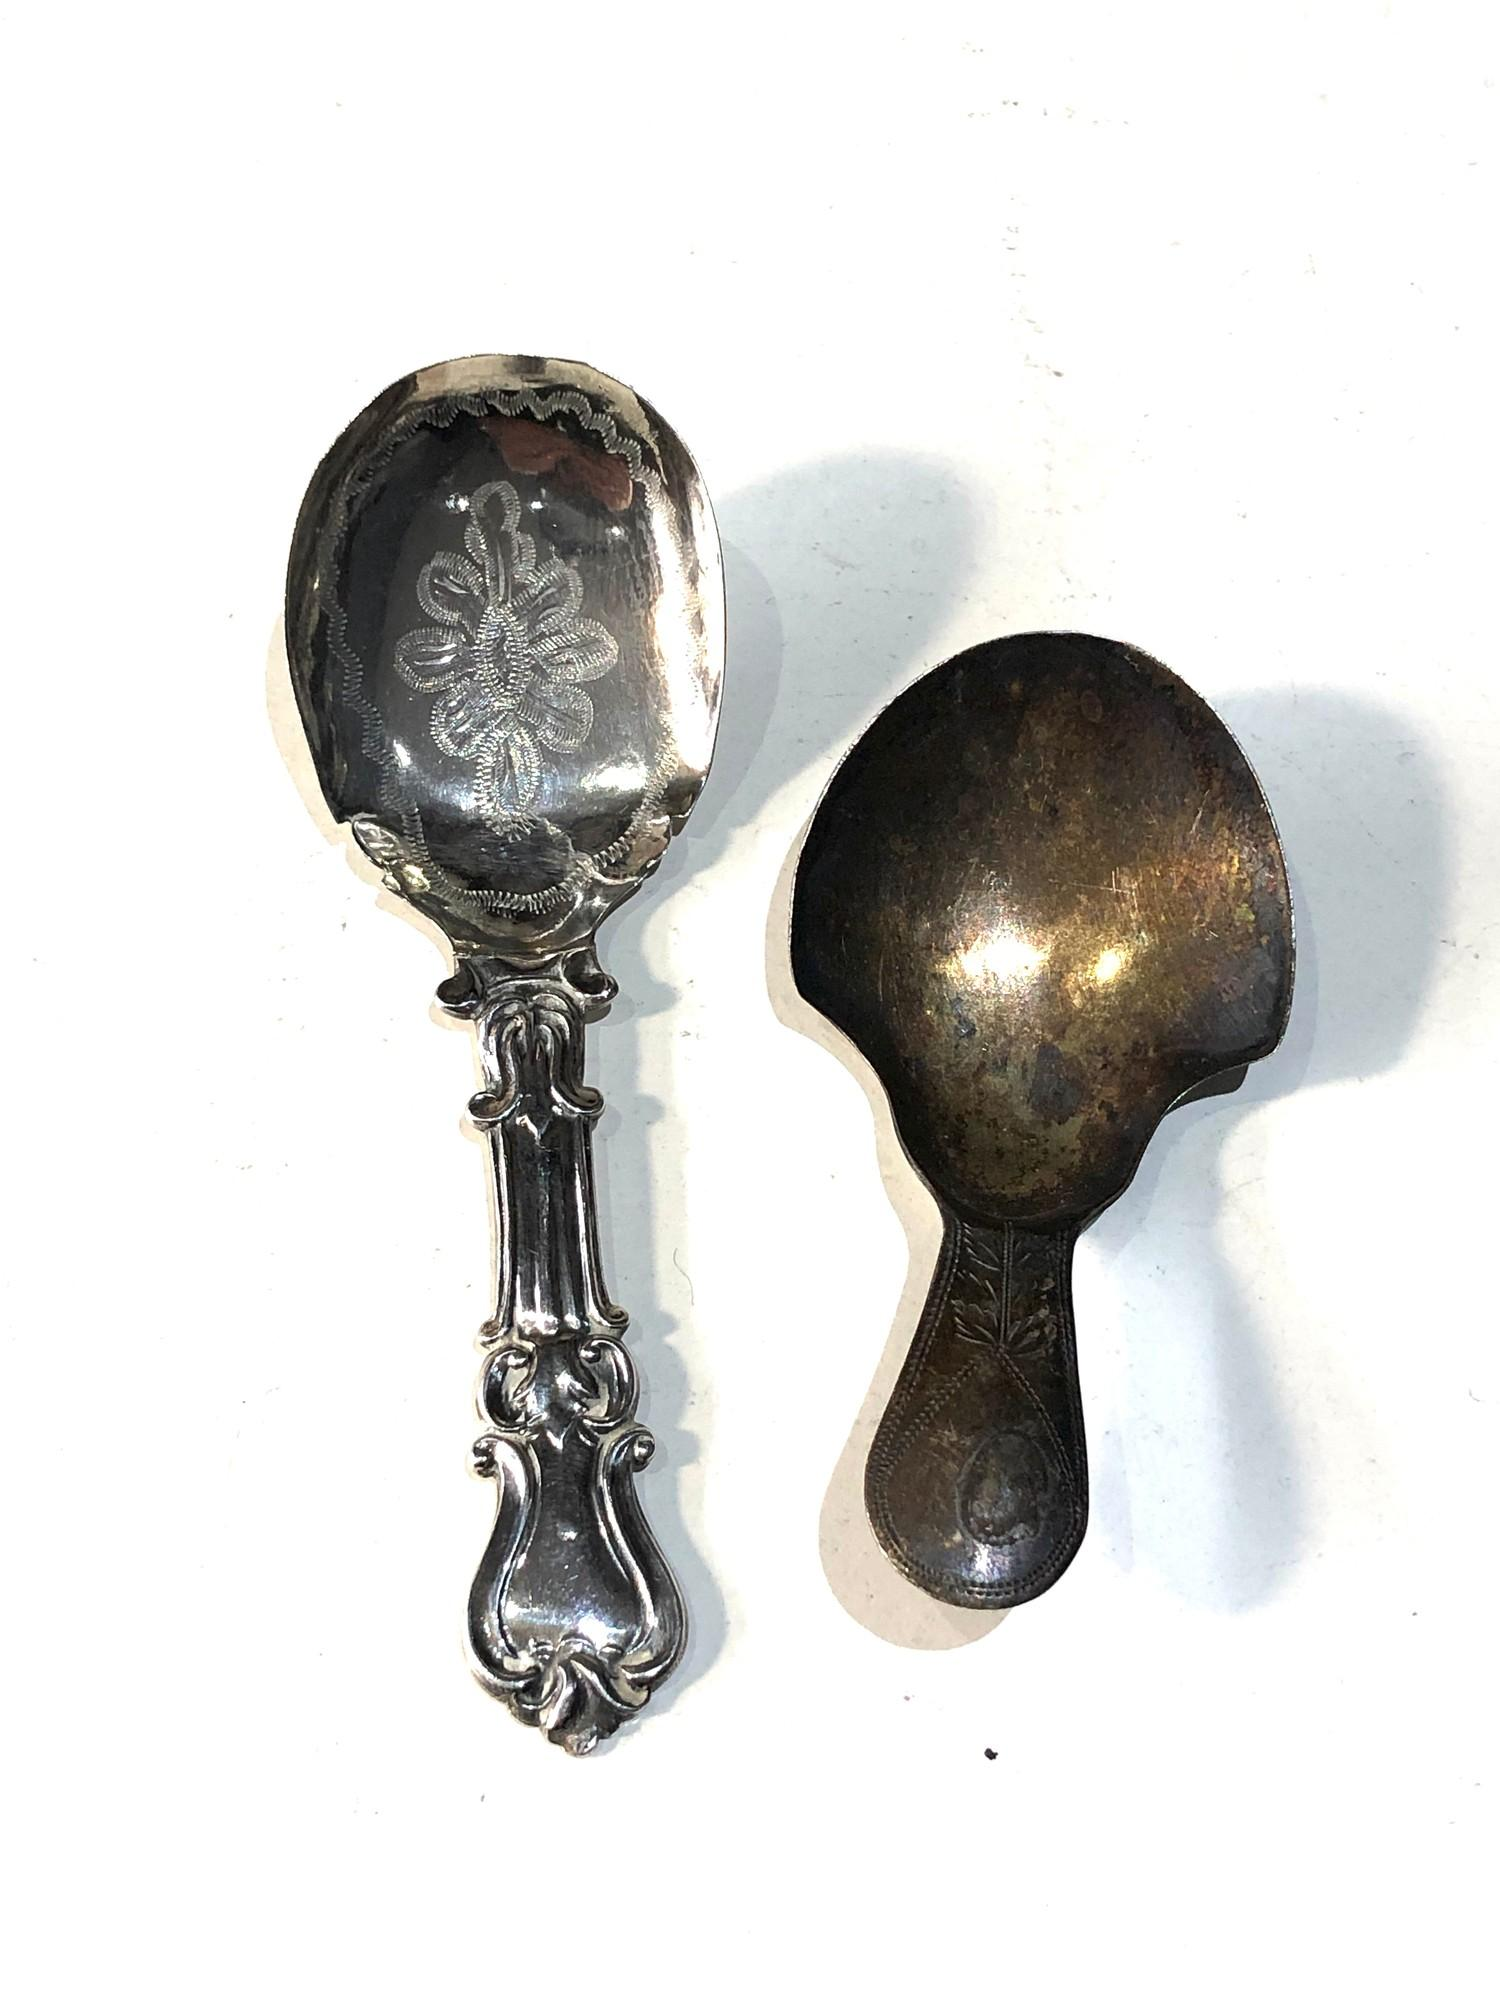 2 antique silver tea caddy spoons age related wear